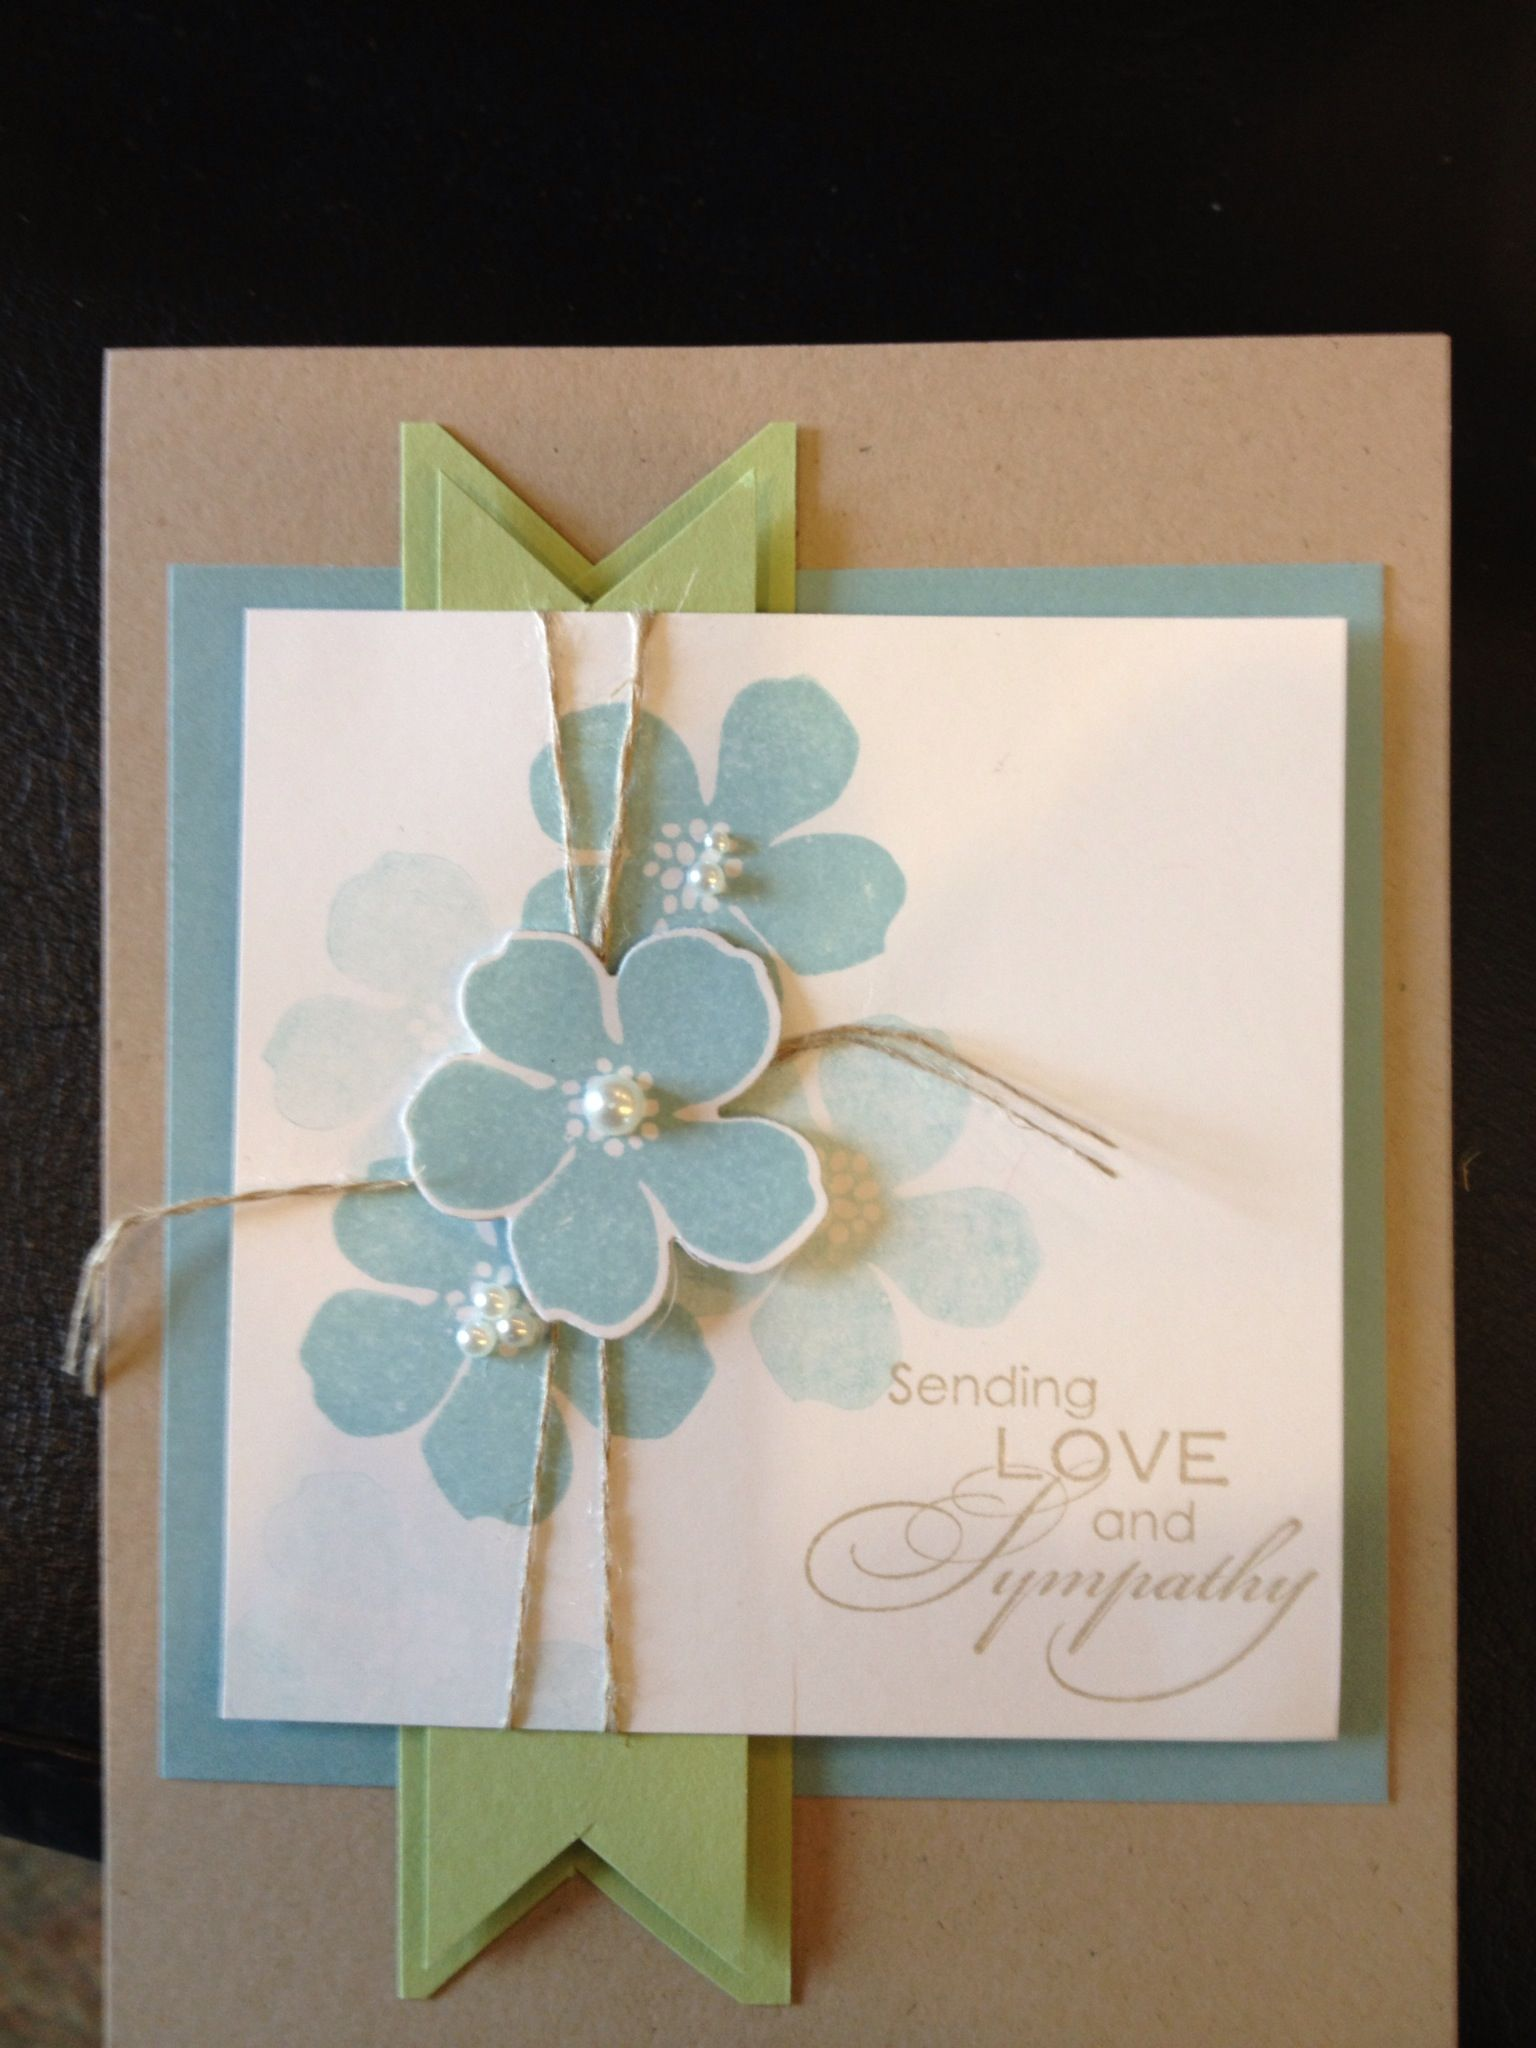 Pin By Deann Lopetrone On Cards Pinterest Wrapping Ideas Paper